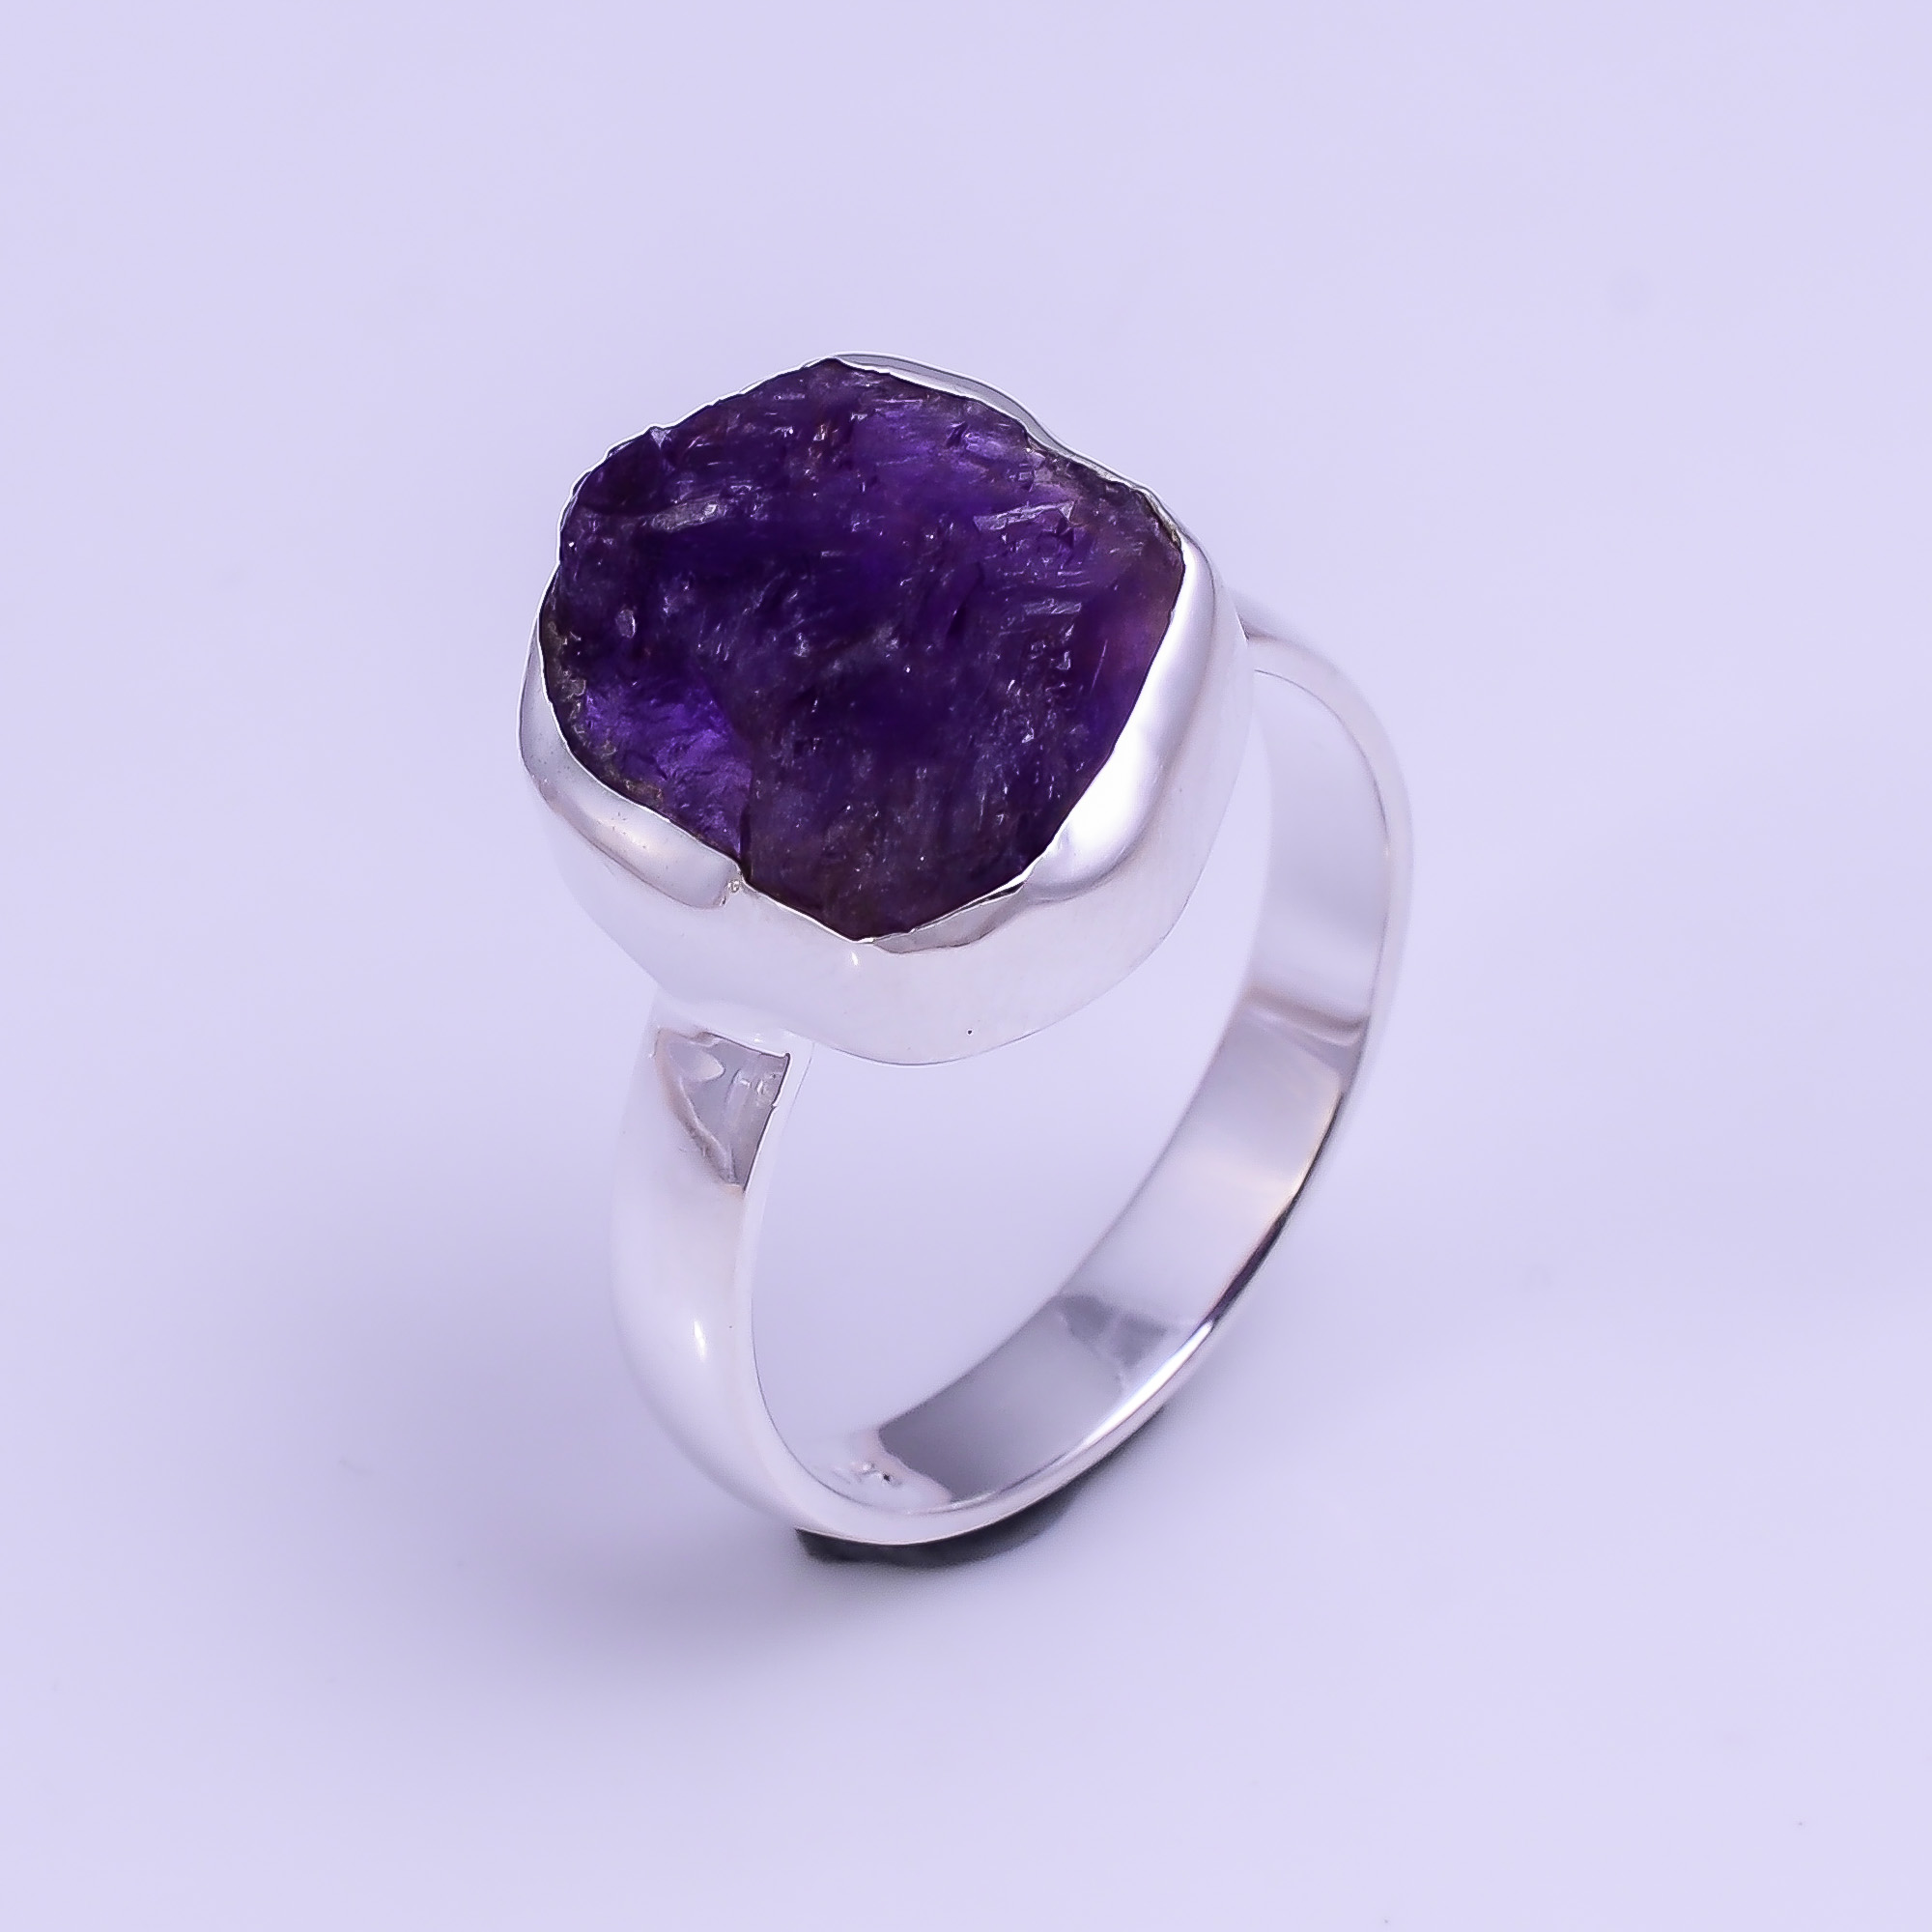 Natural Amethyst Raw Gemstone 925 Sterling Silver Ring Size US 7.75